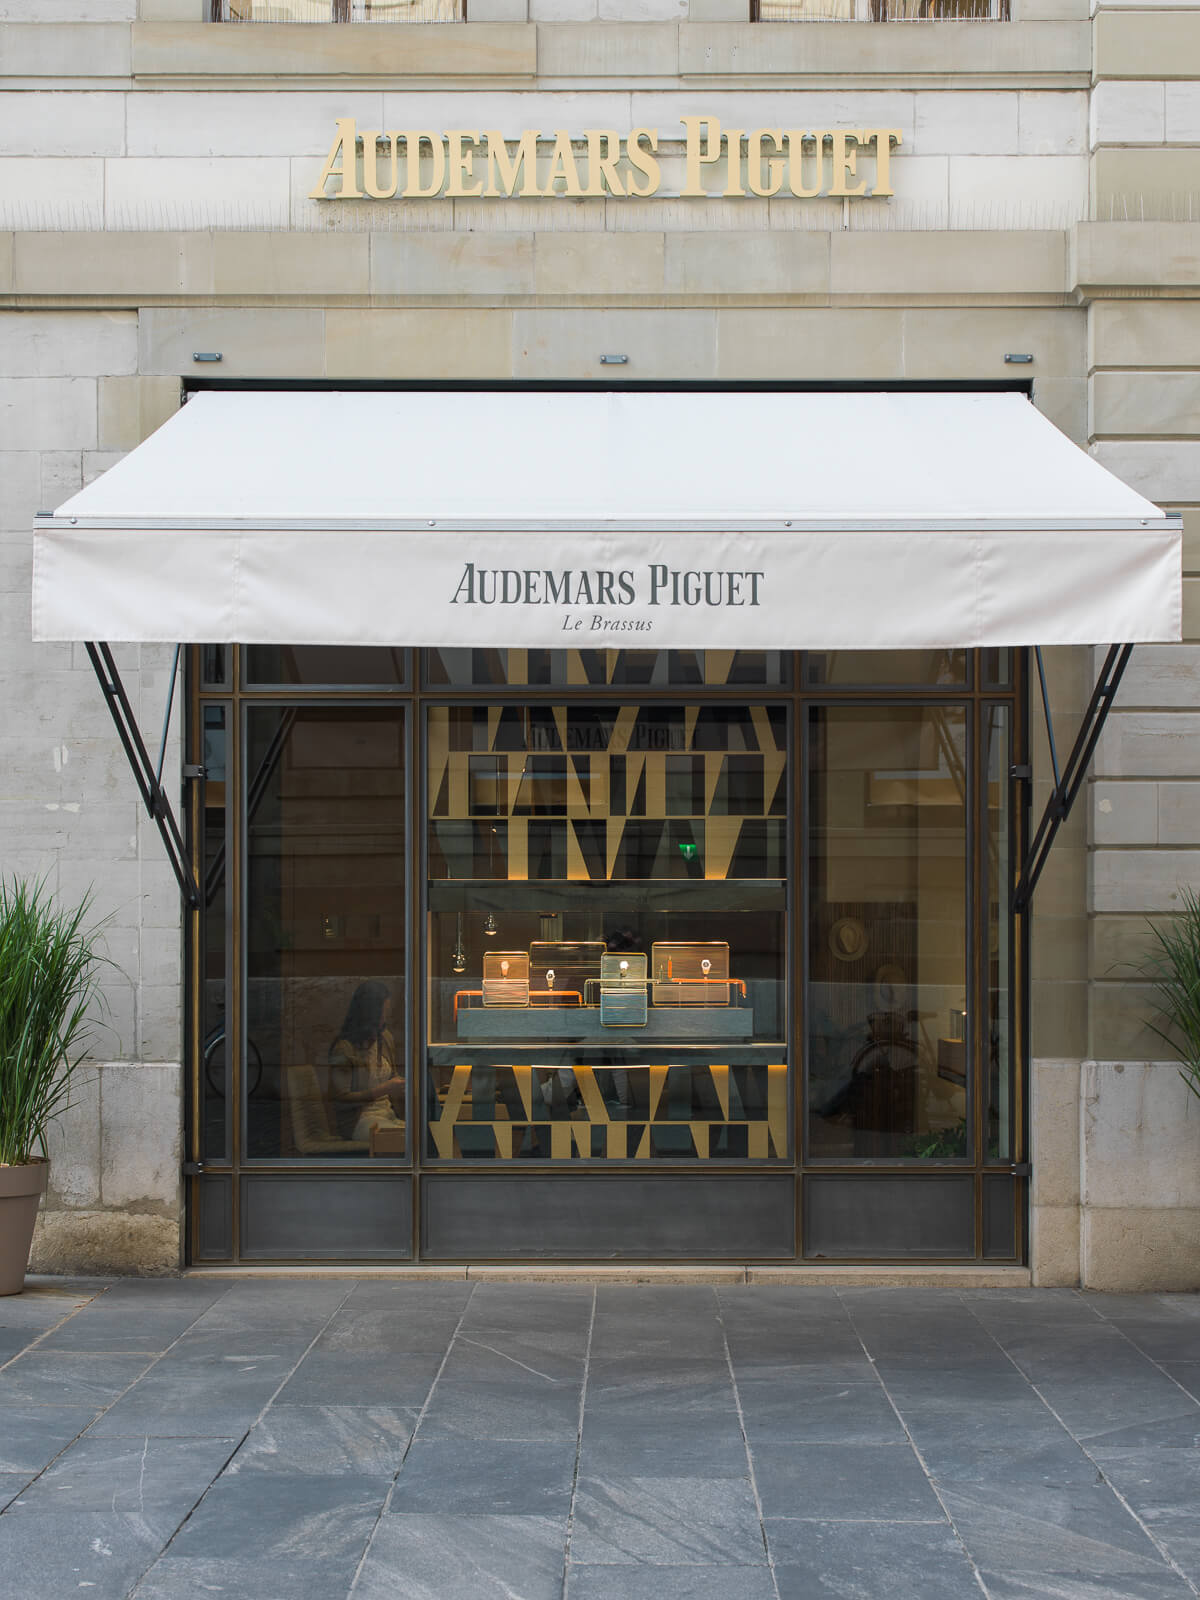 audemars-piguet-window-display-front